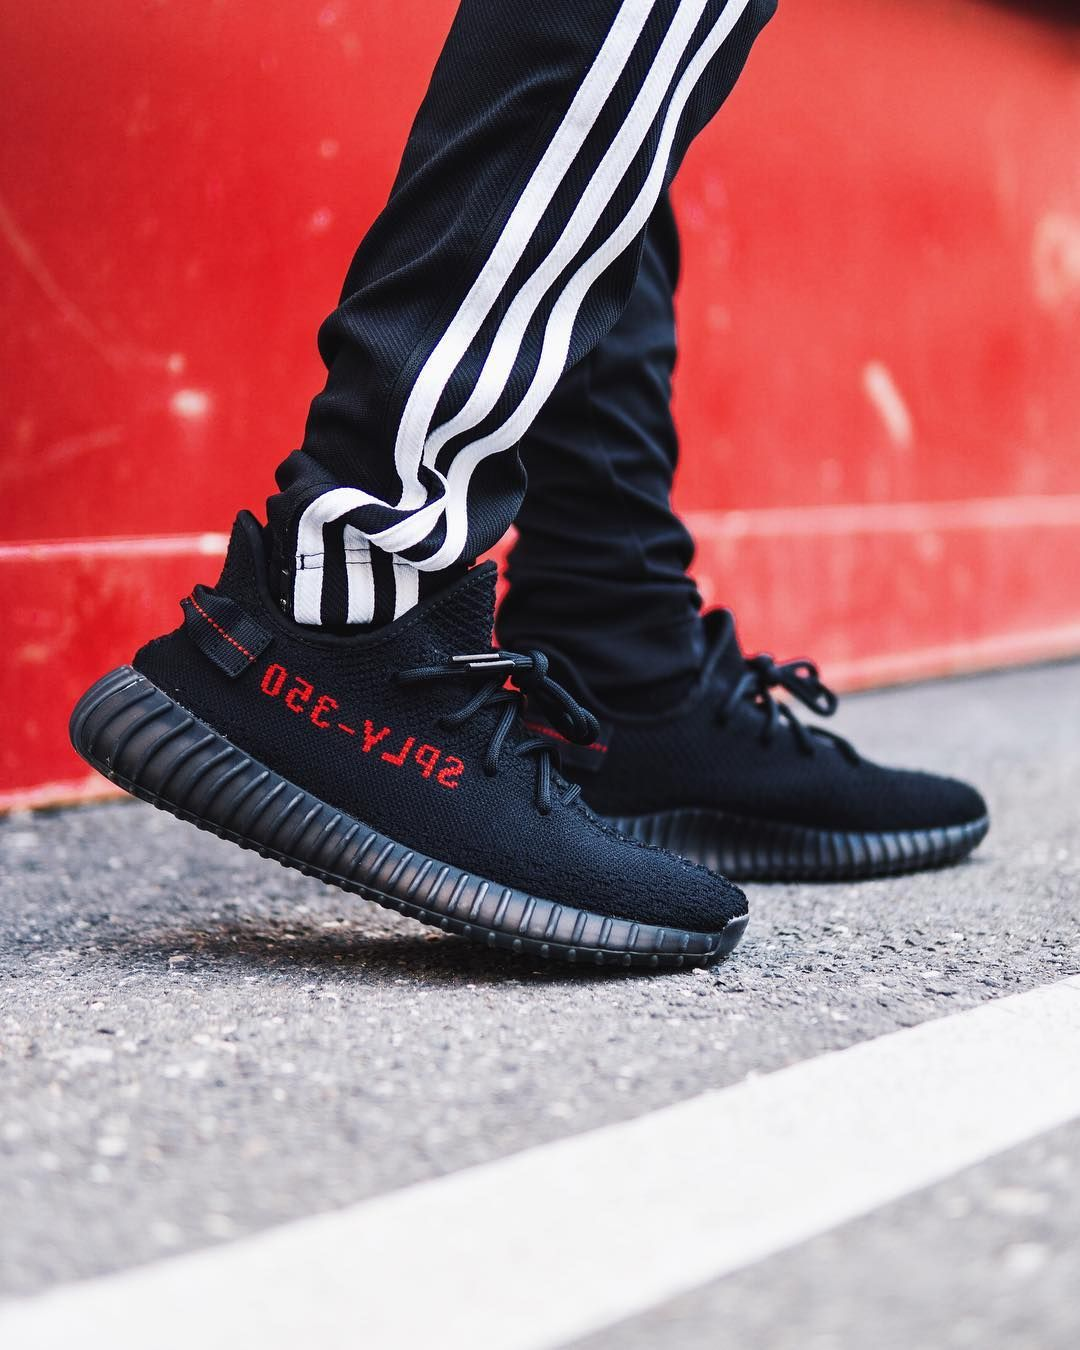 Yeezy Boost 350 V2 Black Red With Images Yeezy Adidas Yeezy